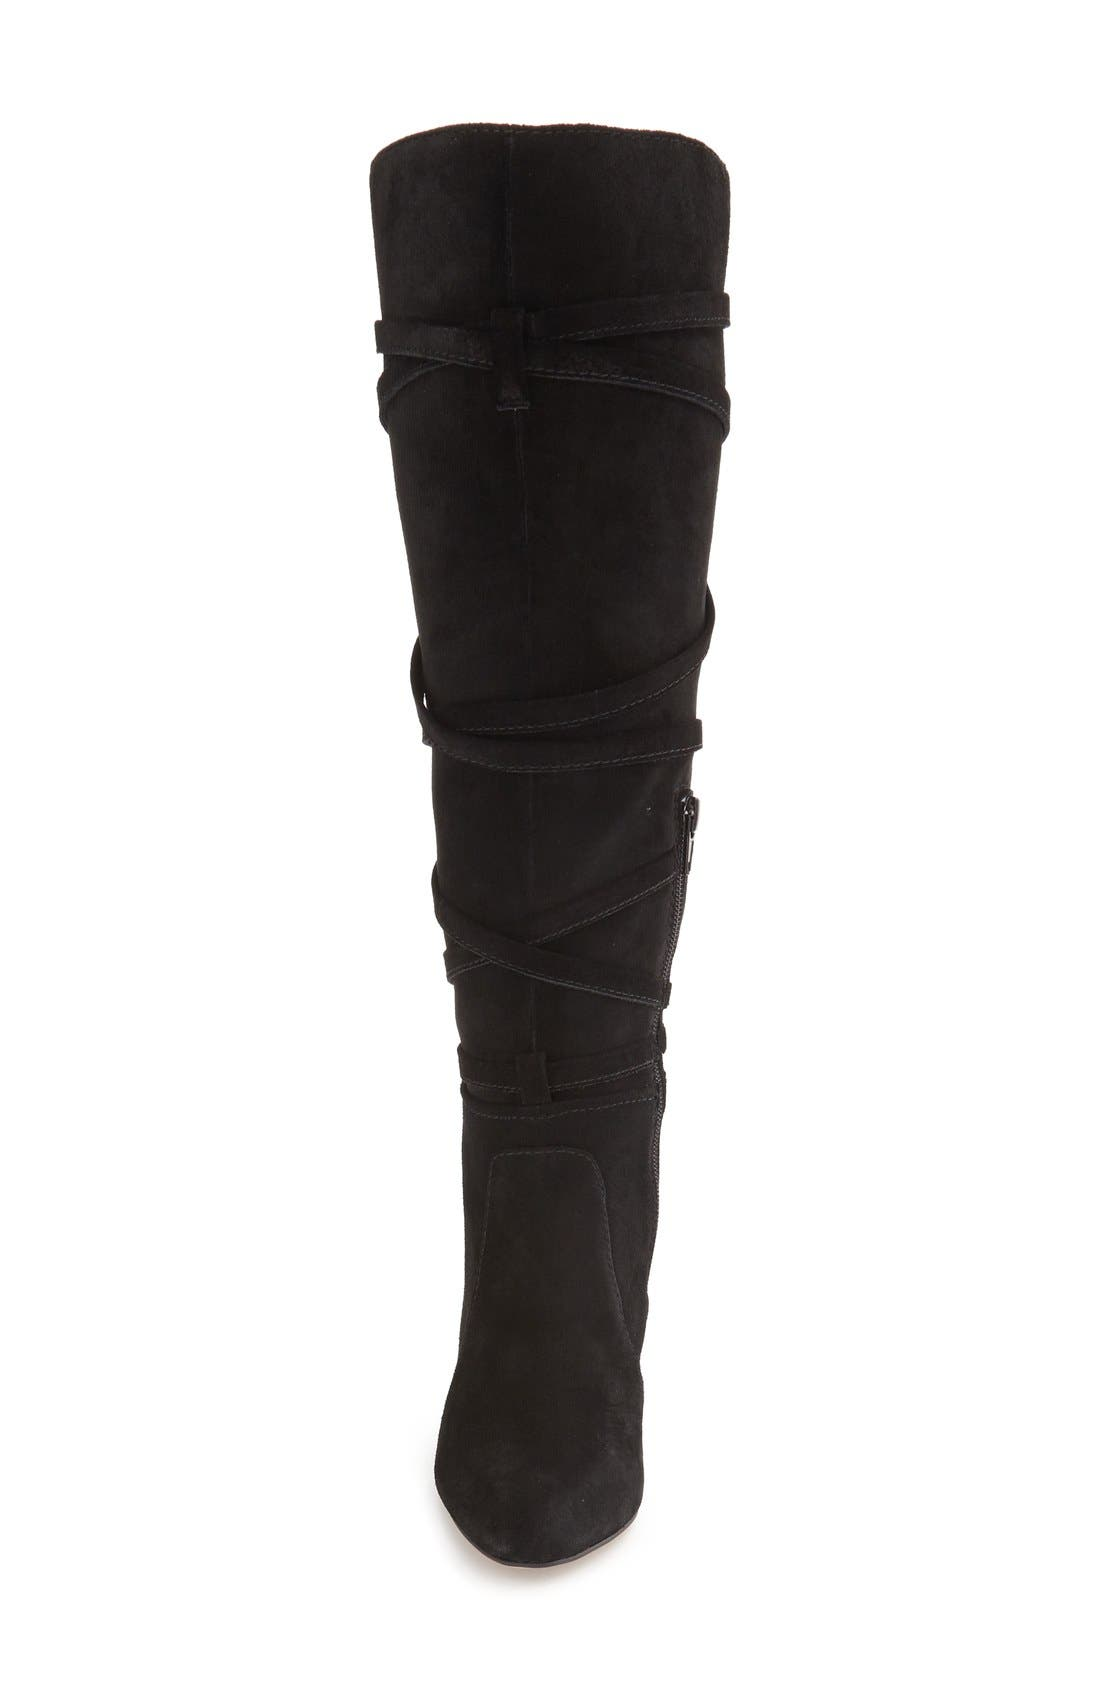 VINCE CAMUTO, 'Millay' Knee High Boot, Alternate thumbnail 4, color, 002